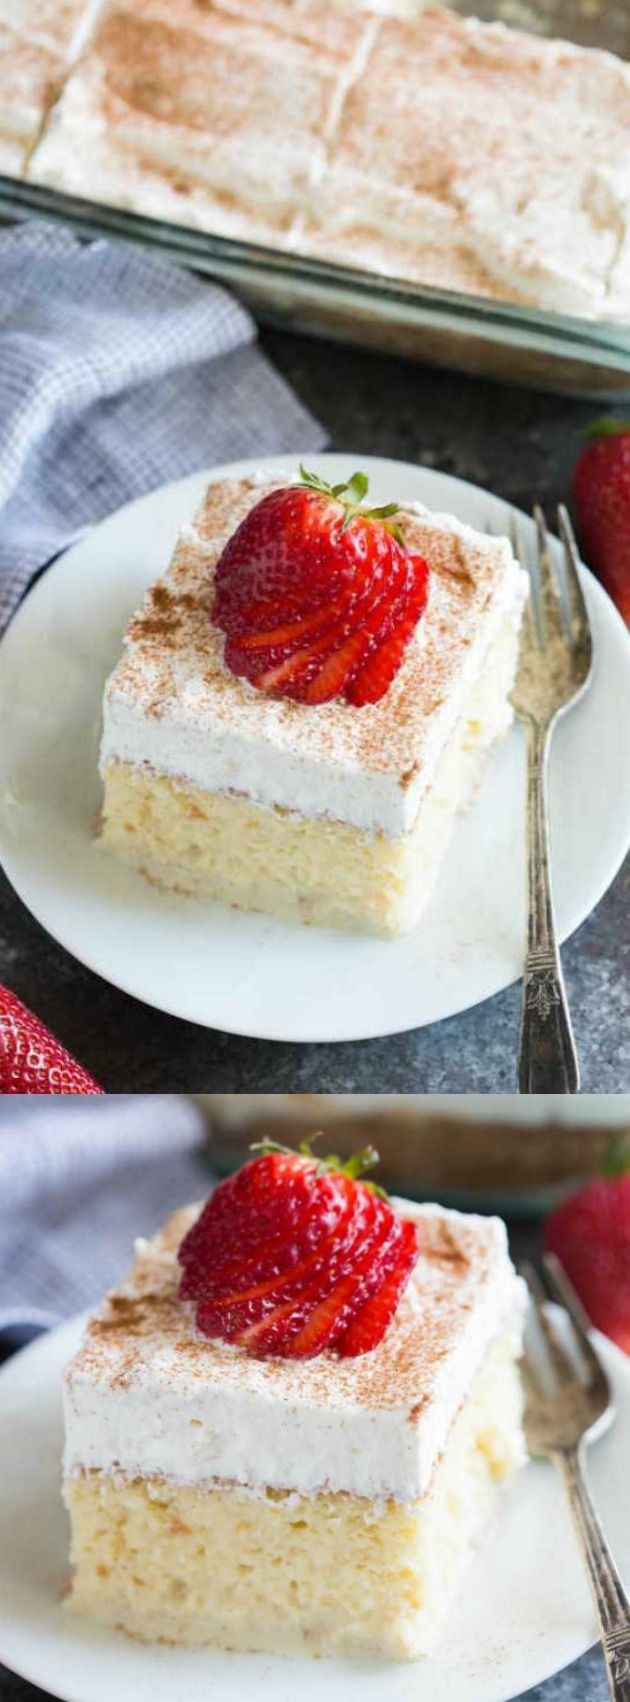 This Tres Leches Cake from Tastes Better from Scratch is a simple Mexican dessert that is one of our favorites. An ultra light cake is soaked in a sweet milk mixture and topped with fresh whipped cream and cinnamon!